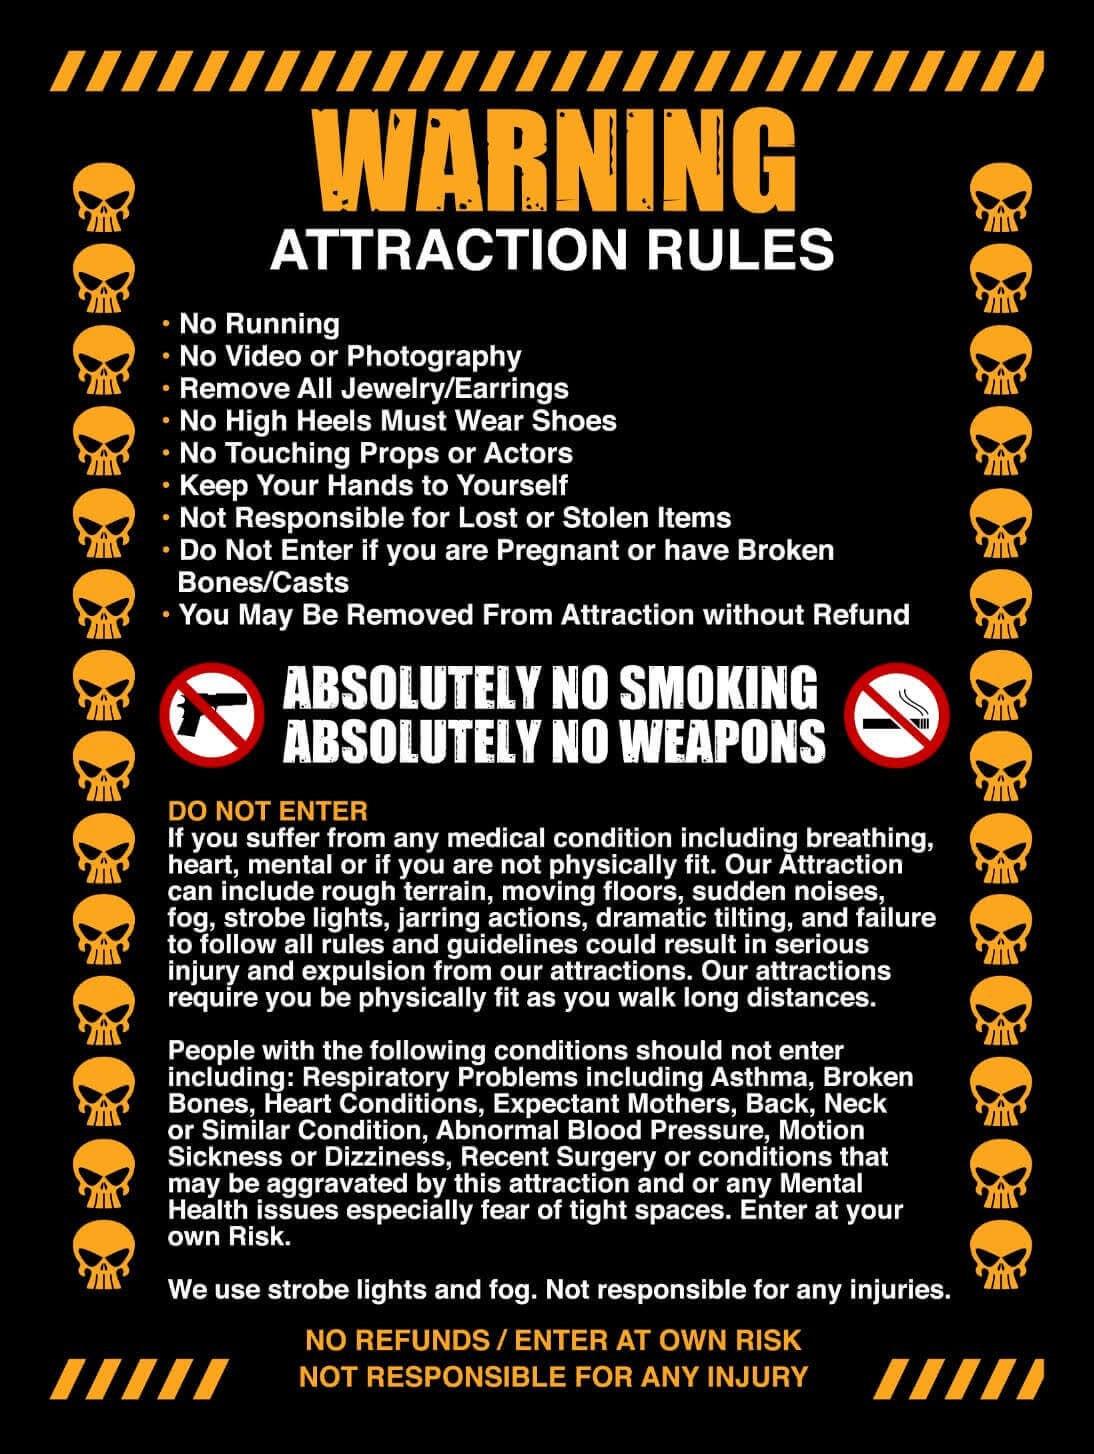 Rules & Warnings